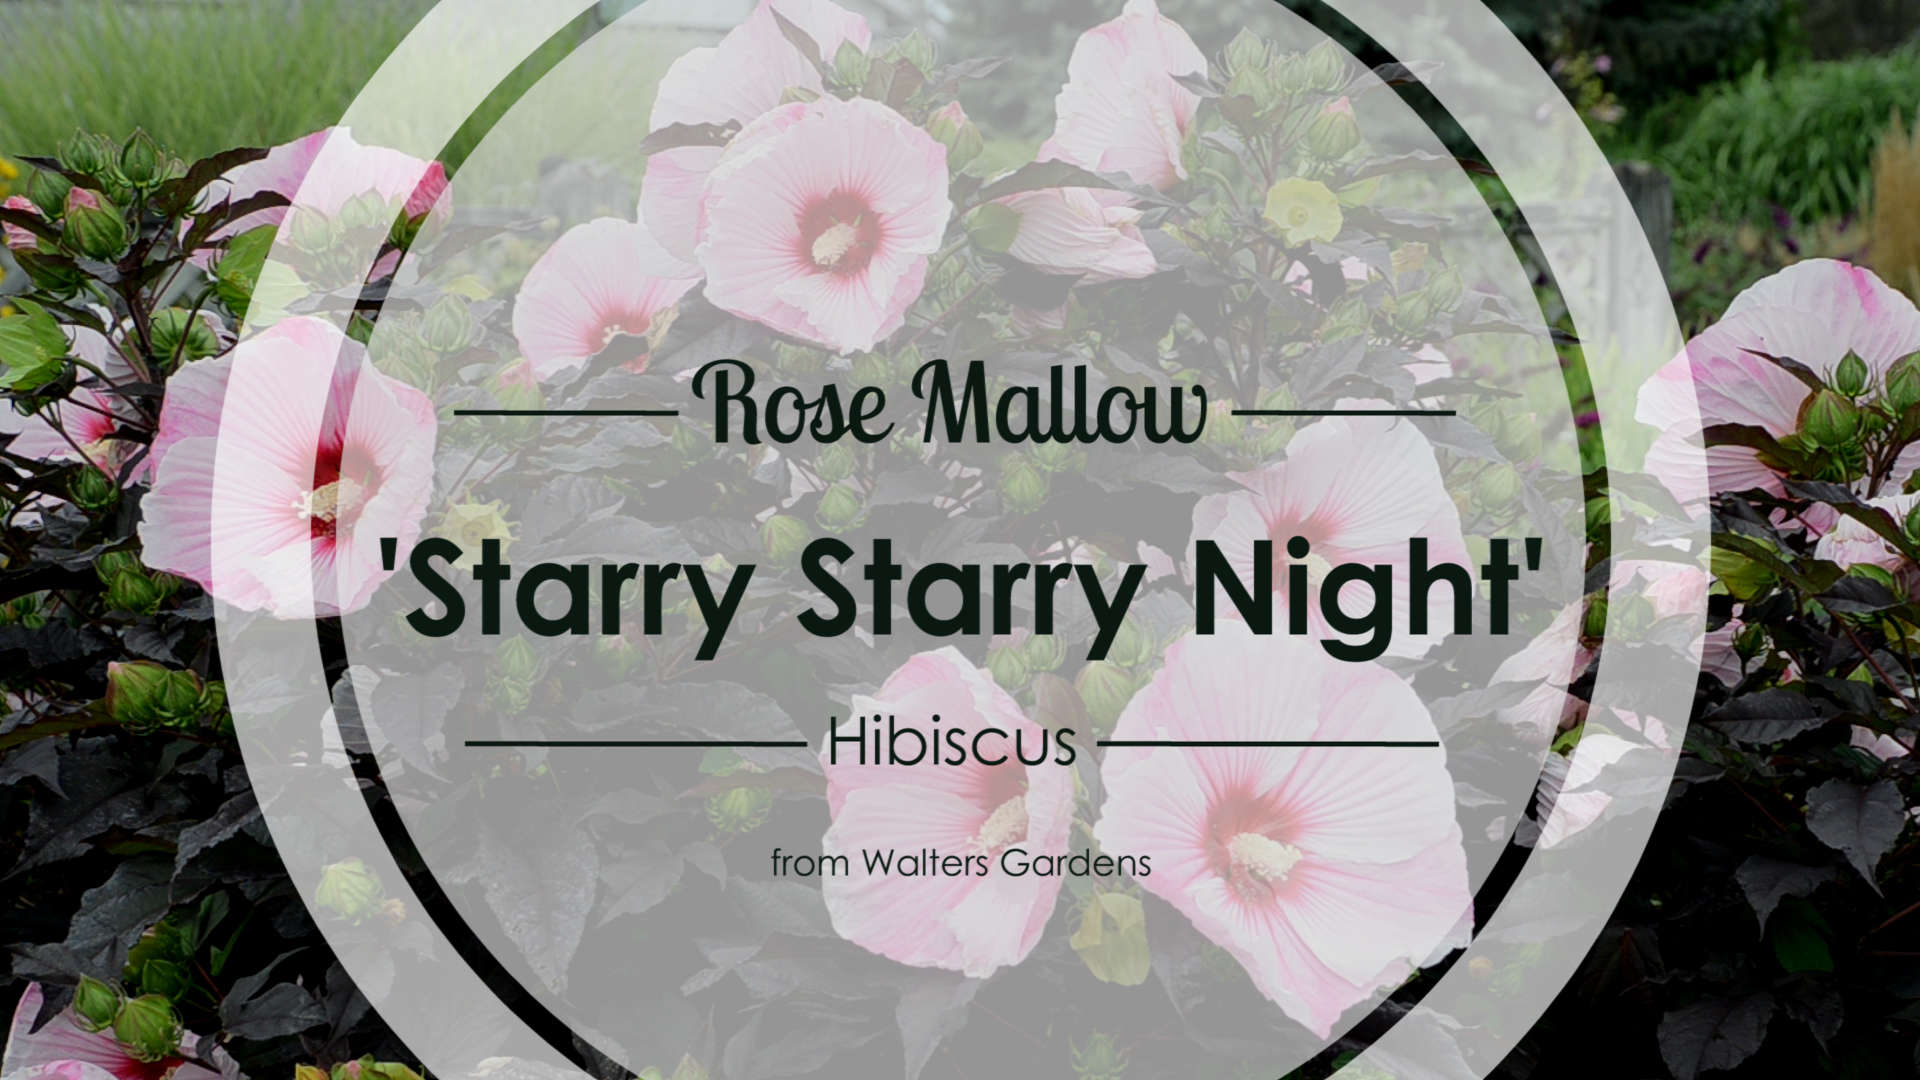 Hibiscus 'Starry Starry Night' Rose Mallow